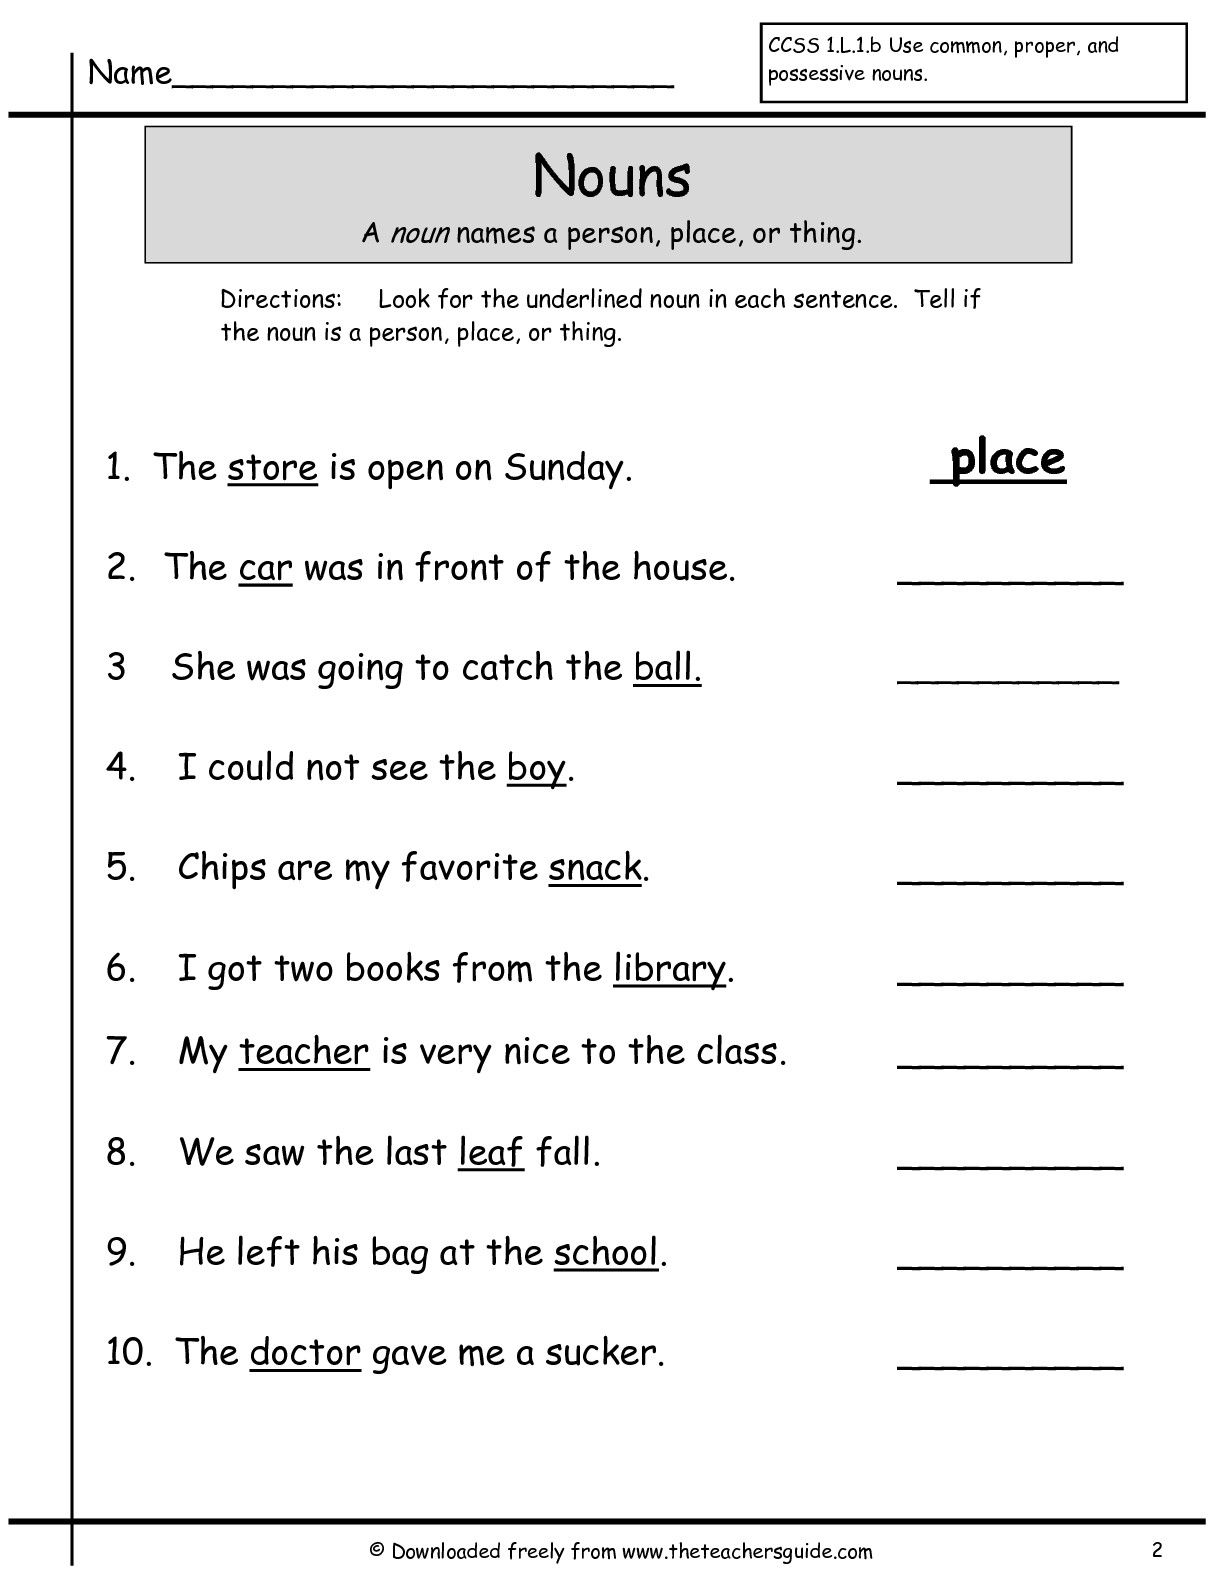 nouns grade 1 worksheets - Google Search | Kelina ...